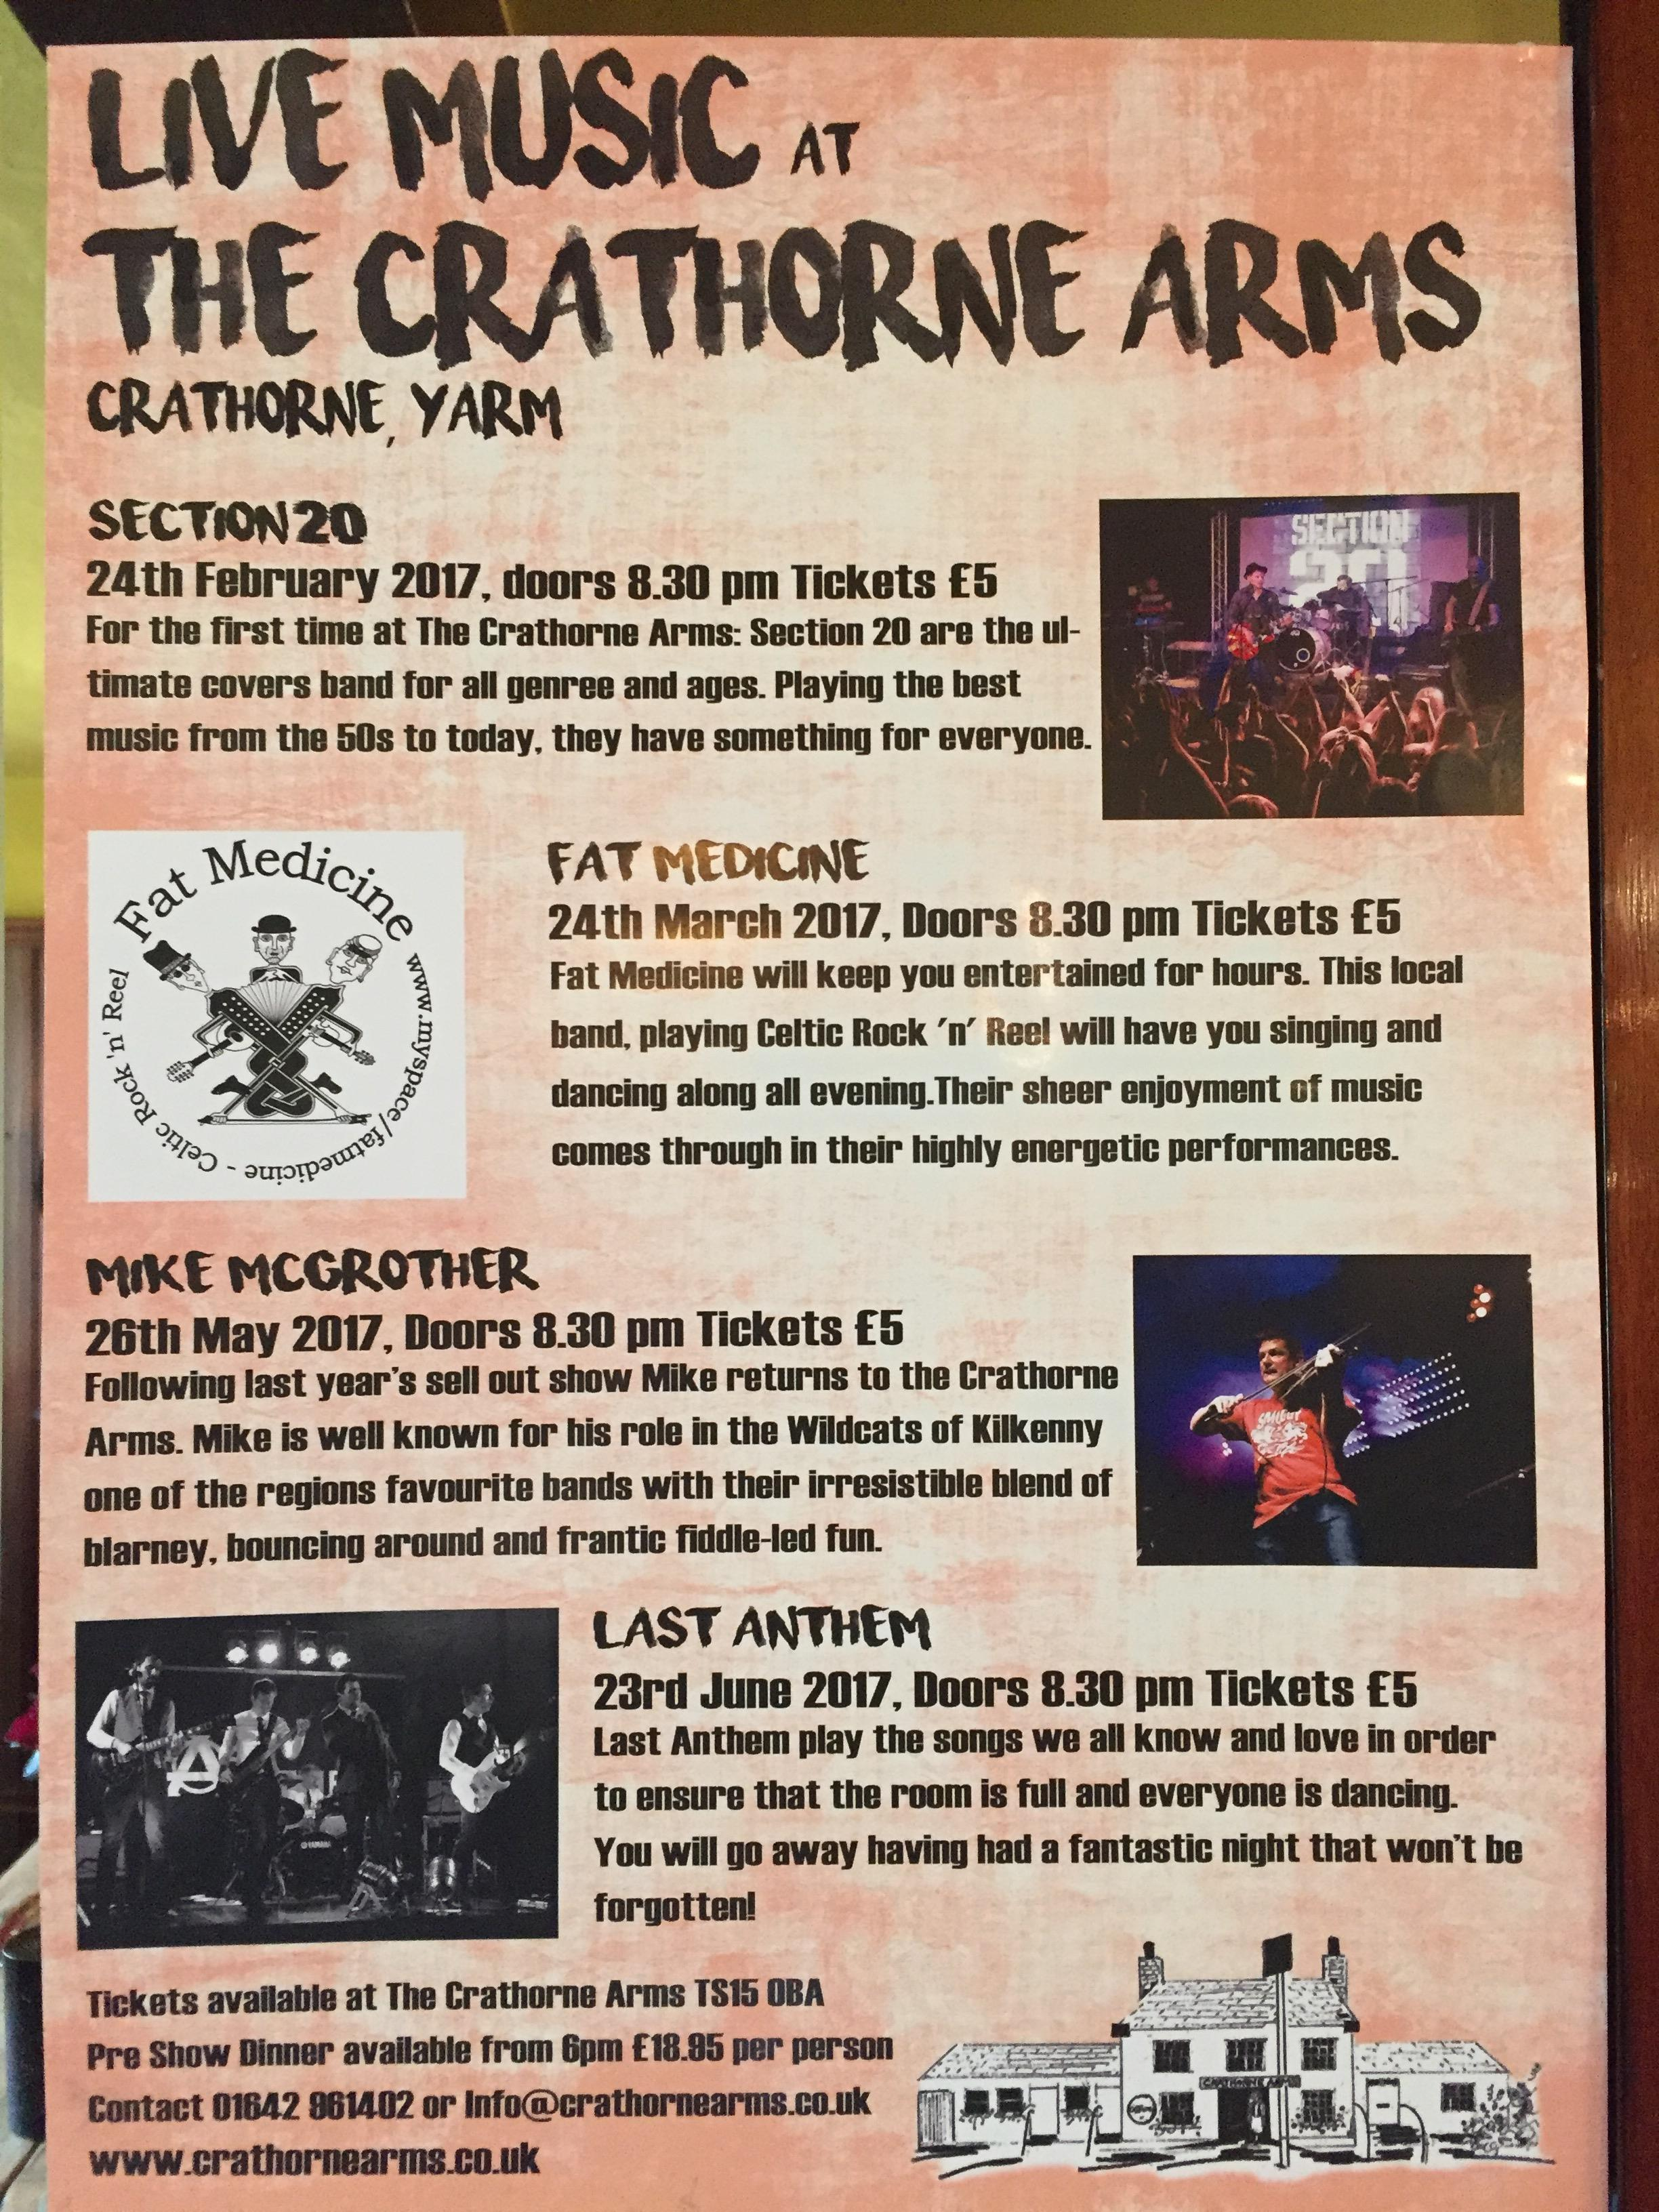 Good News Music Lovers, Our Gig Listing For The Next Few Months Is Here! We  Have Mike McGrother With His Choir The Infant Hercules, The Full Last  Anthem And ...